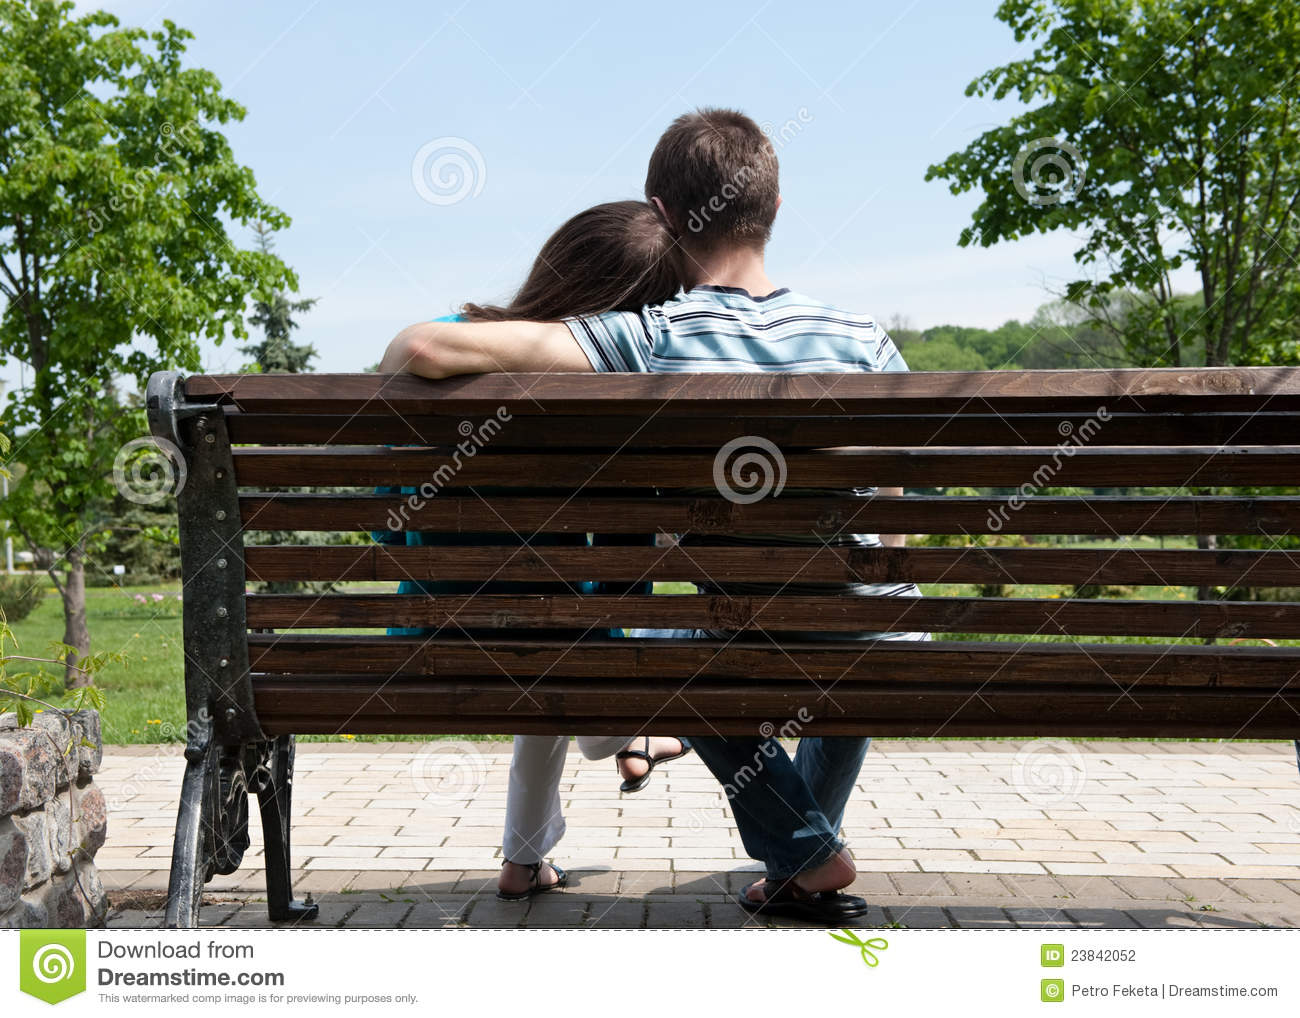 park bench dating The bizarre incident on a british park bench is drawing comparisons to the russians claimed mi6 paid him $100,000 for the continued flow of spy names dating back.